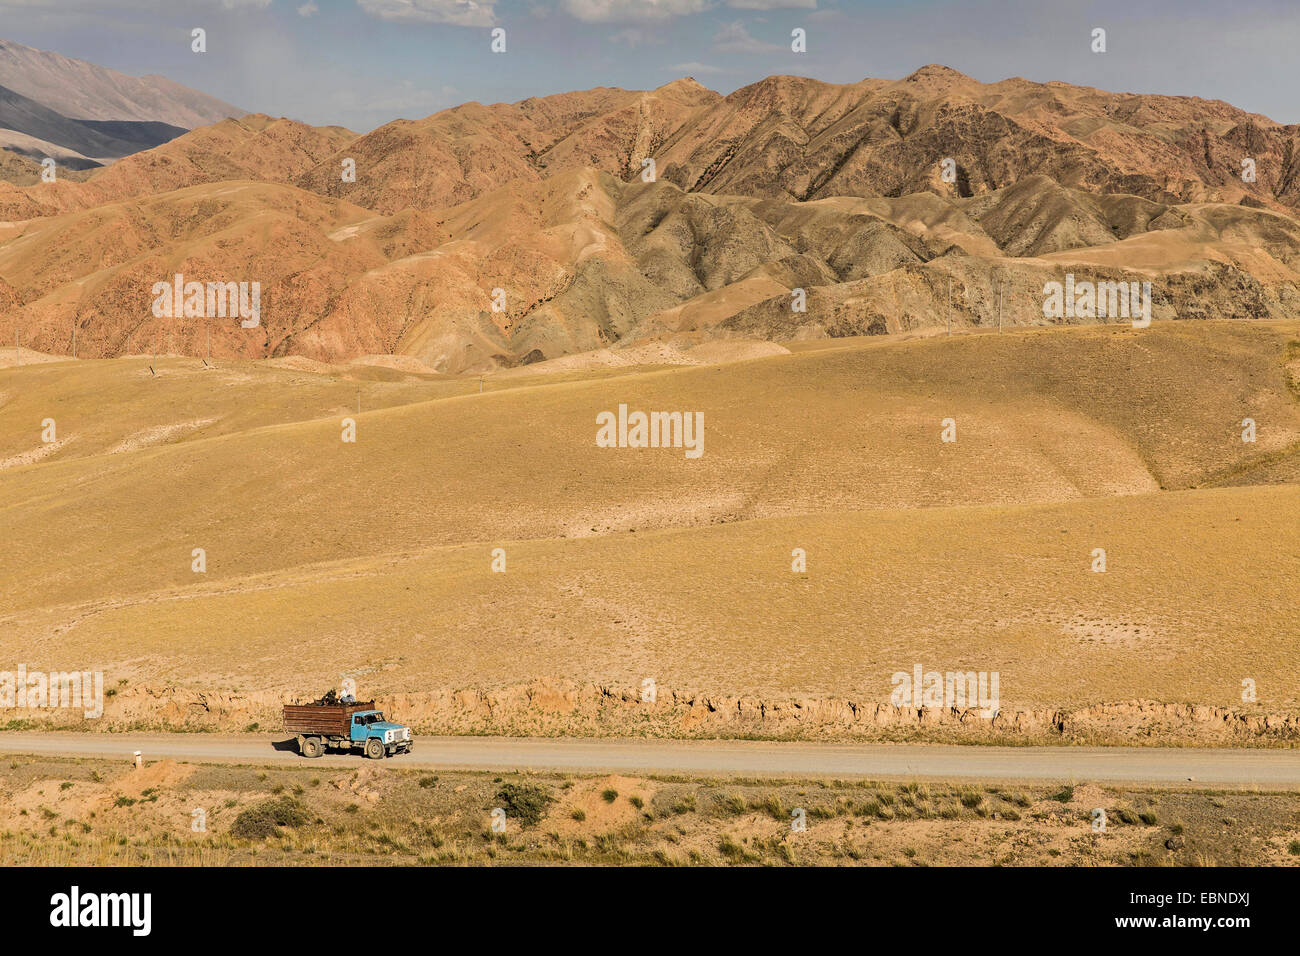 old truck on country road in hilly wasteland, Kyrgyzstan, Kochkor - Stock Image